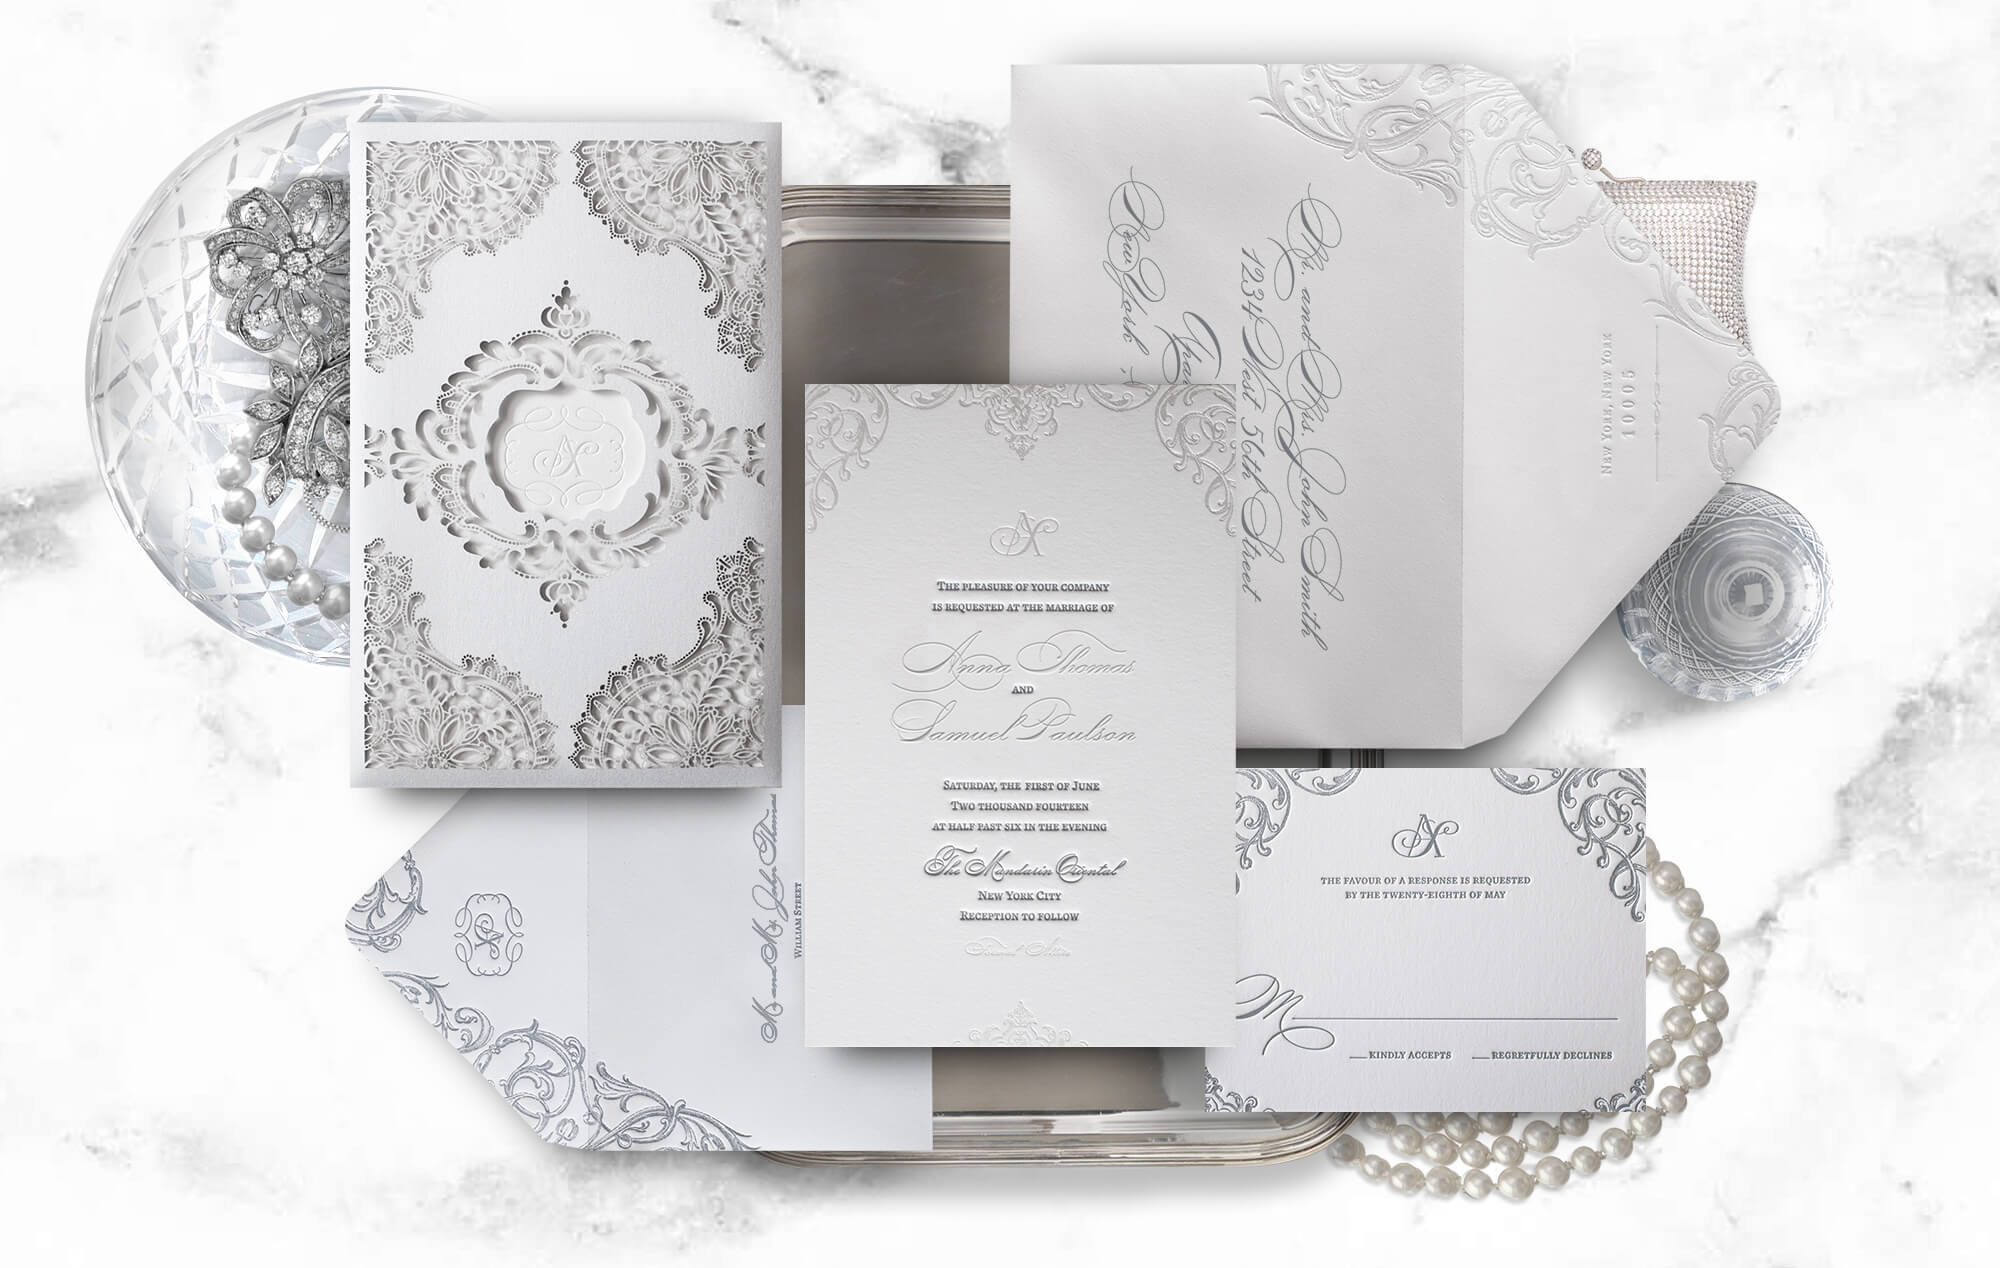 White wedding invitation with laser cut sleeve